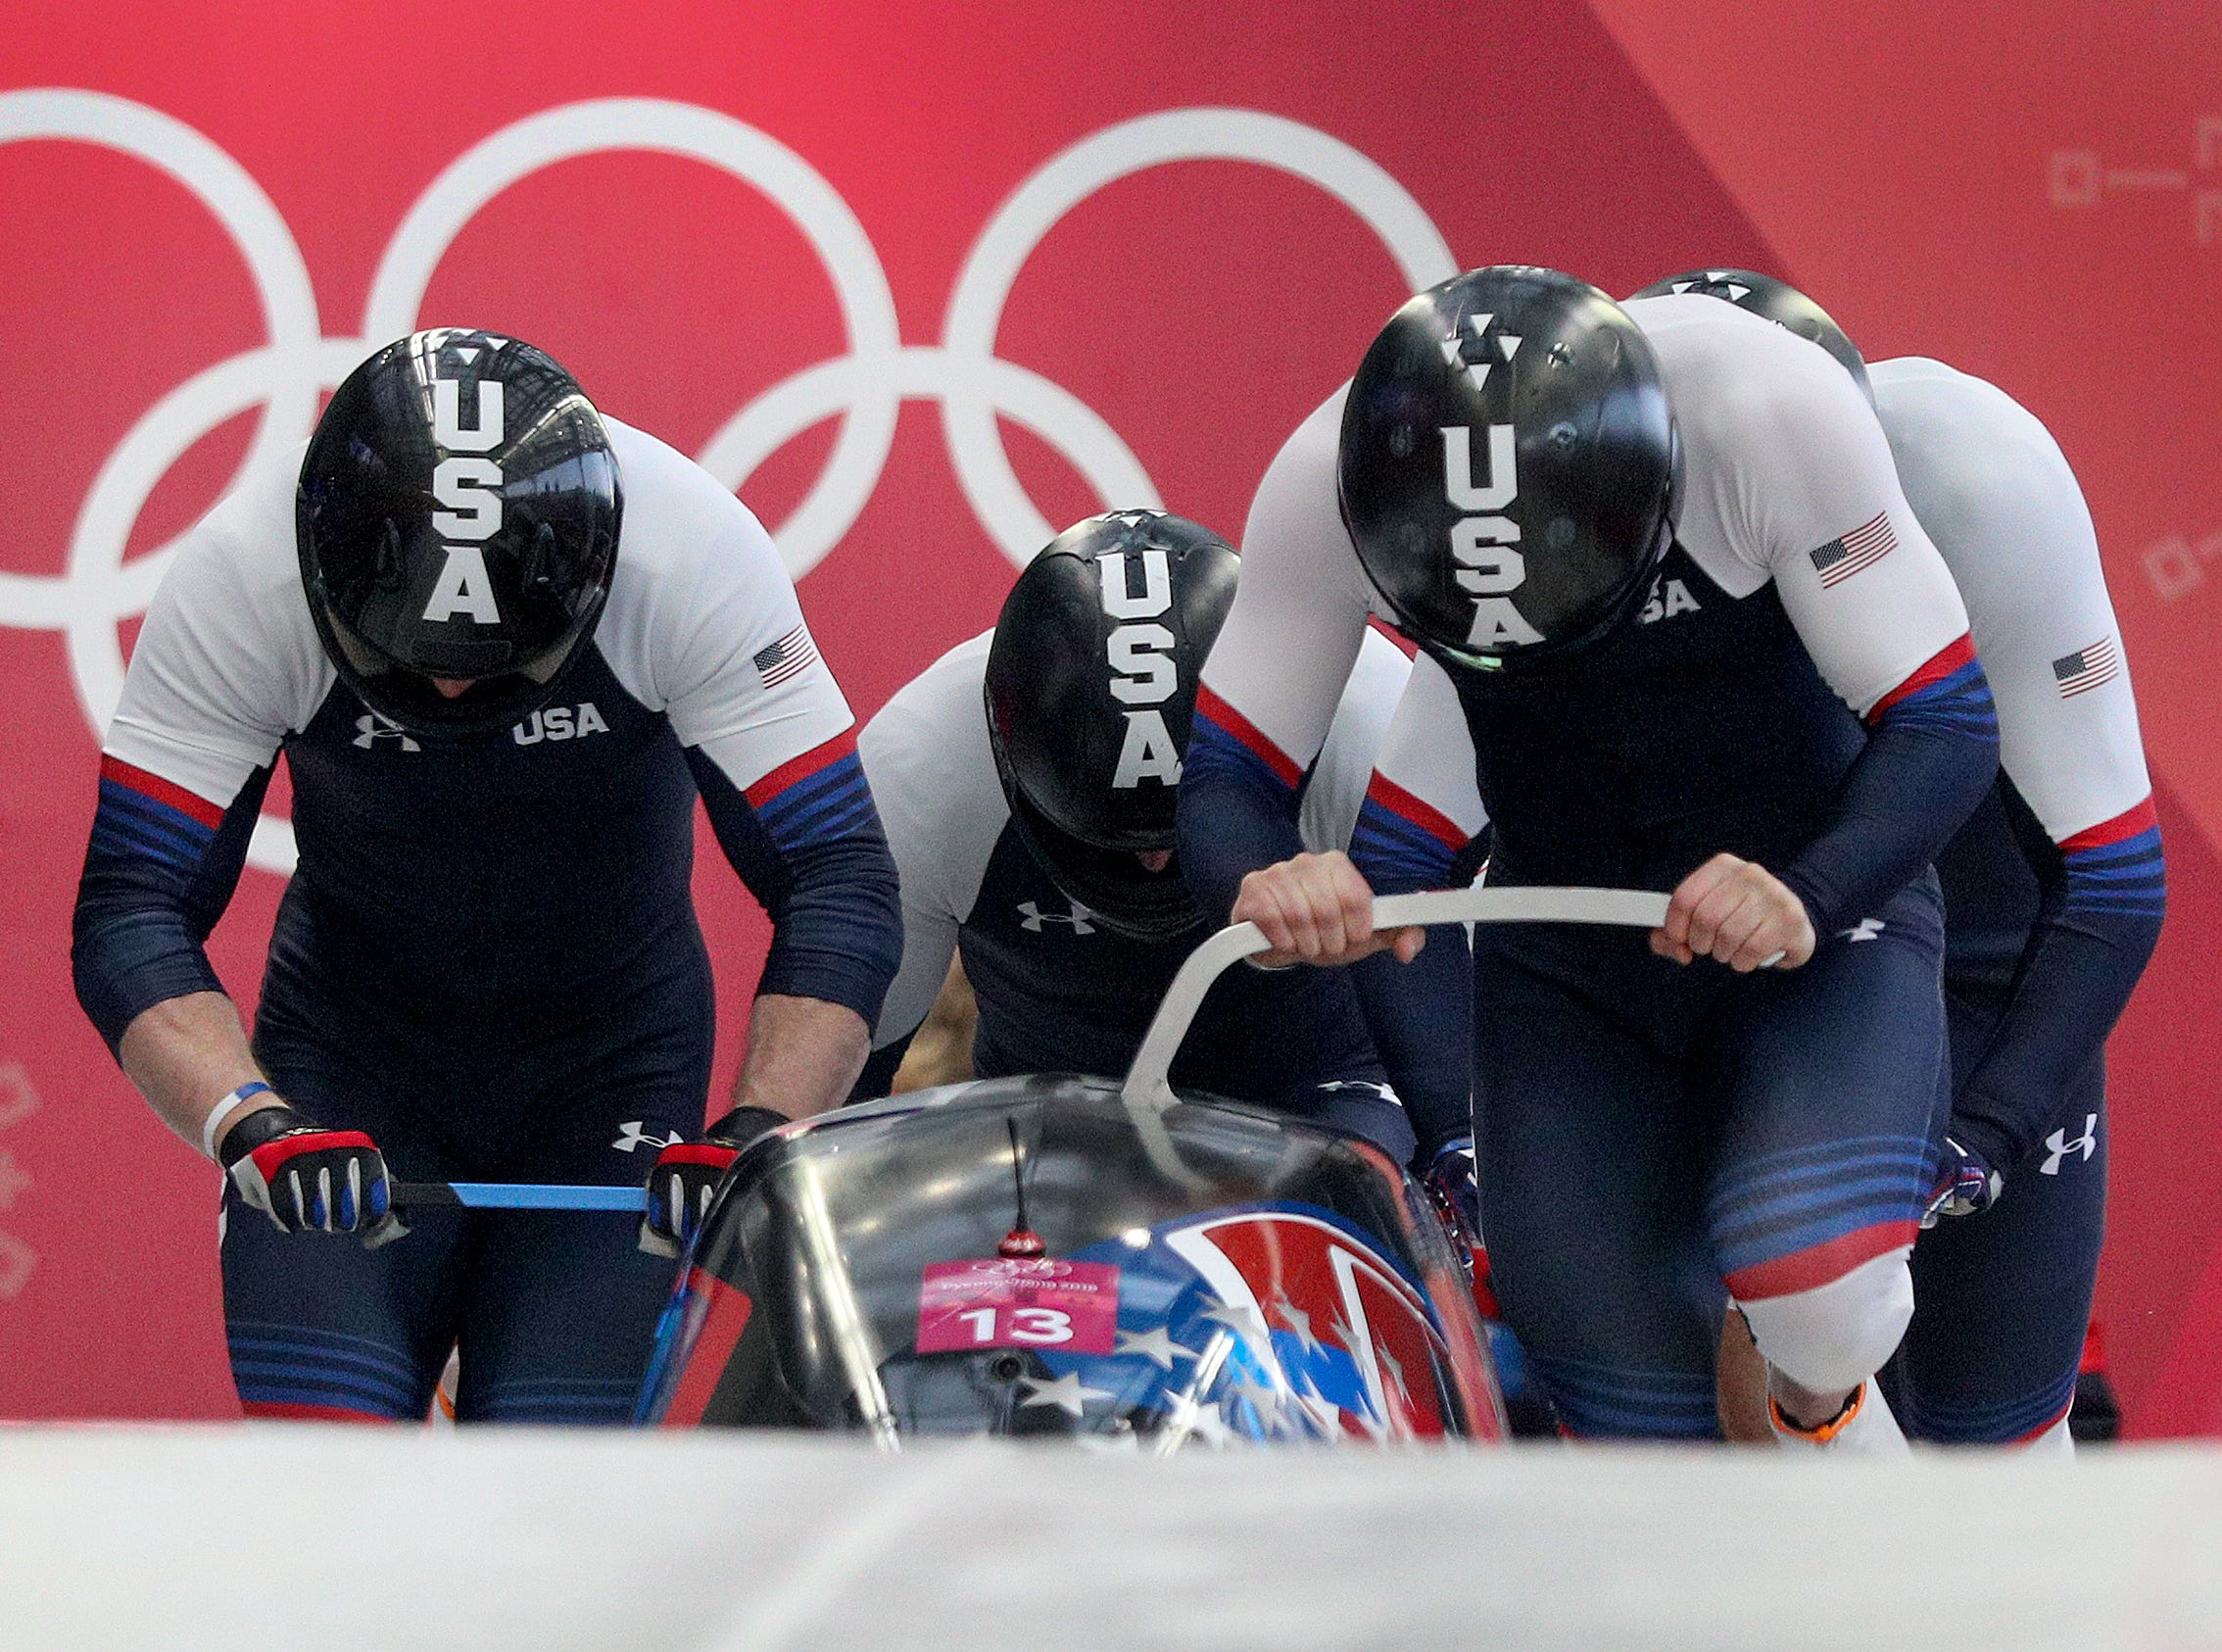 Feb 24, 2018; Pyeongchang, South Korea; during the Pyeongchang 2018 Olympic Winter Games at Olympic Sliding Centre. Mandatory Credit: Matt Kryger-USA TODAY Sports